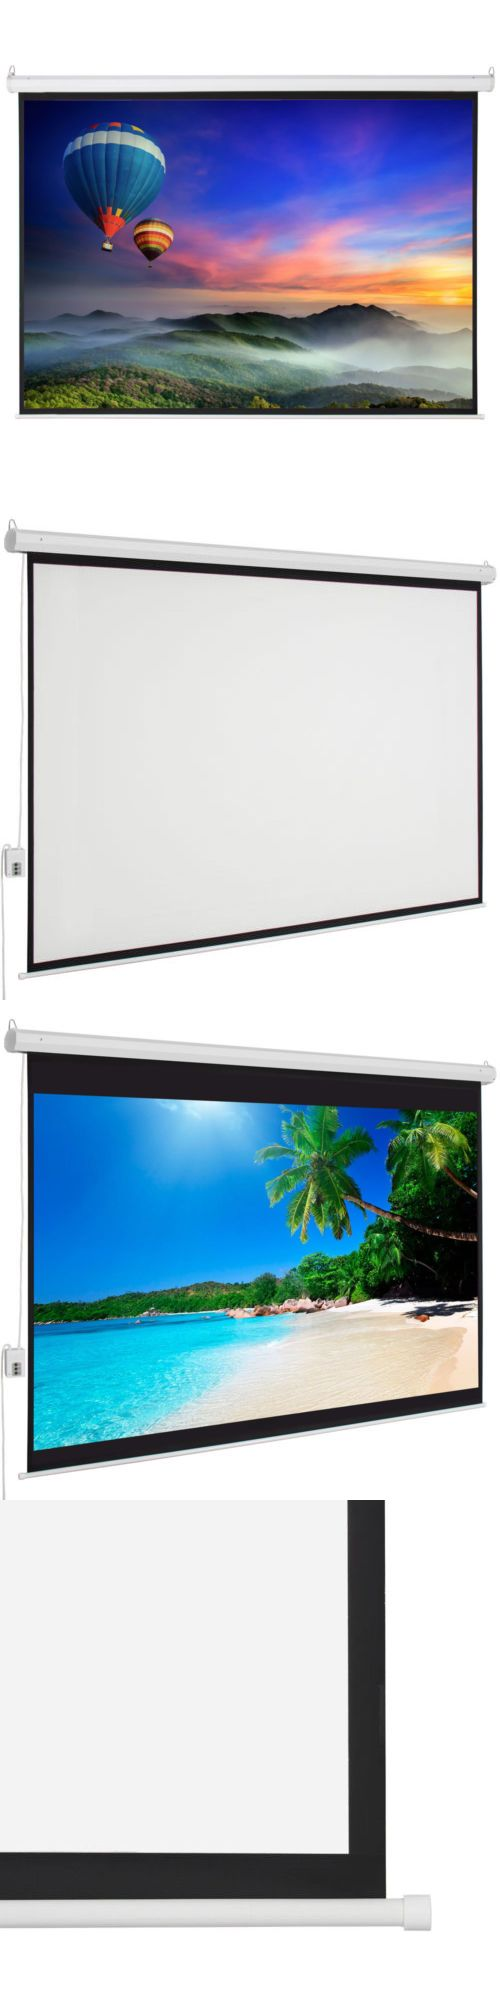 Projection Screens and Material: New Big Sale 100 4:3 Foldable Electric Motorized Projector Screen +Remote -> BUY IT NOW ONLY: $59.99 on eBay!